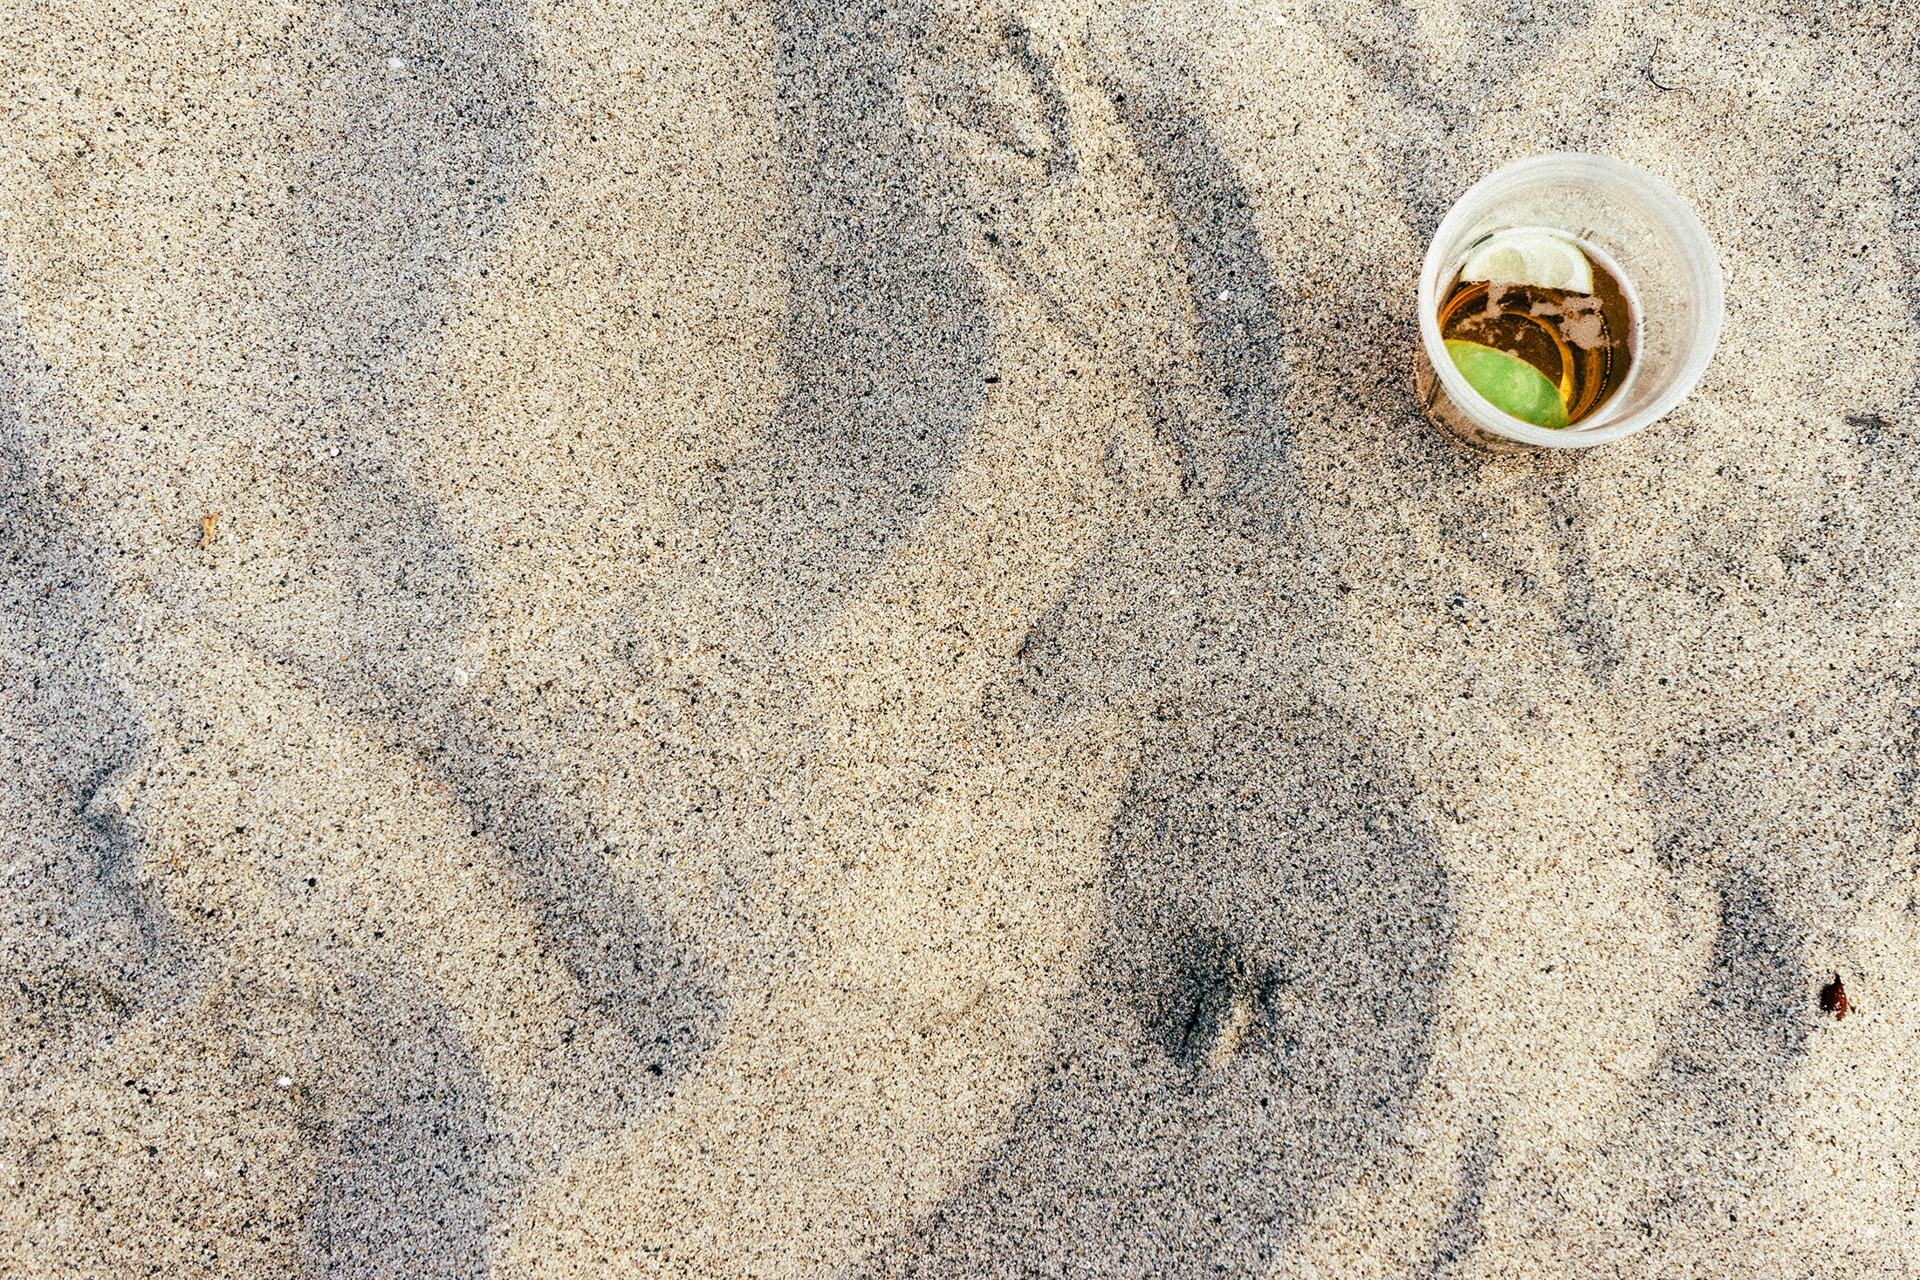 Hosting that many images is not cheap and we are constantly improving ...: https://www.pexels.com/photo/beach-sand-drink-5006